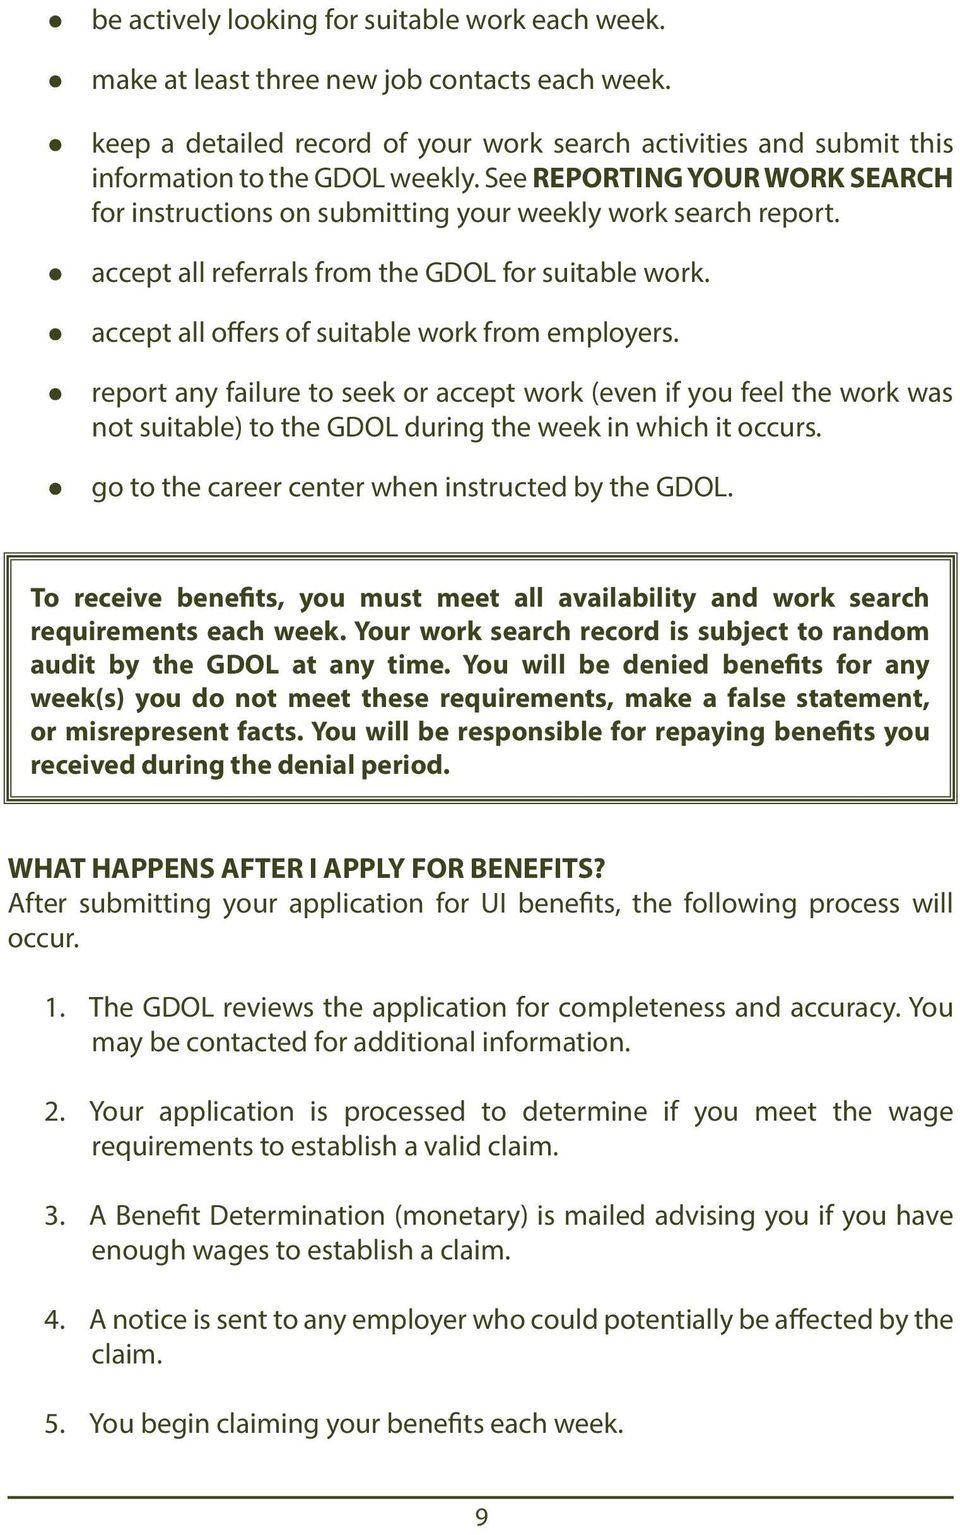 report any failure to seek or accept work (even if you feel the work was not suitable) to the GDOL during the week in which it occurs. go to the career center when instructed by the GDOL.